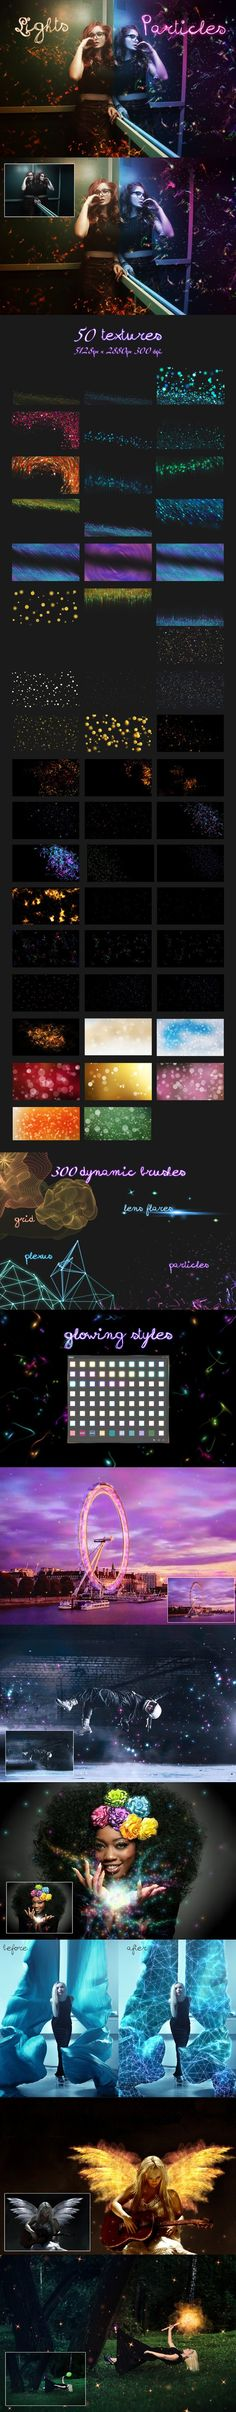 Lights & Particles - Photoshop Pack. Photoshop Brushes. $25.00